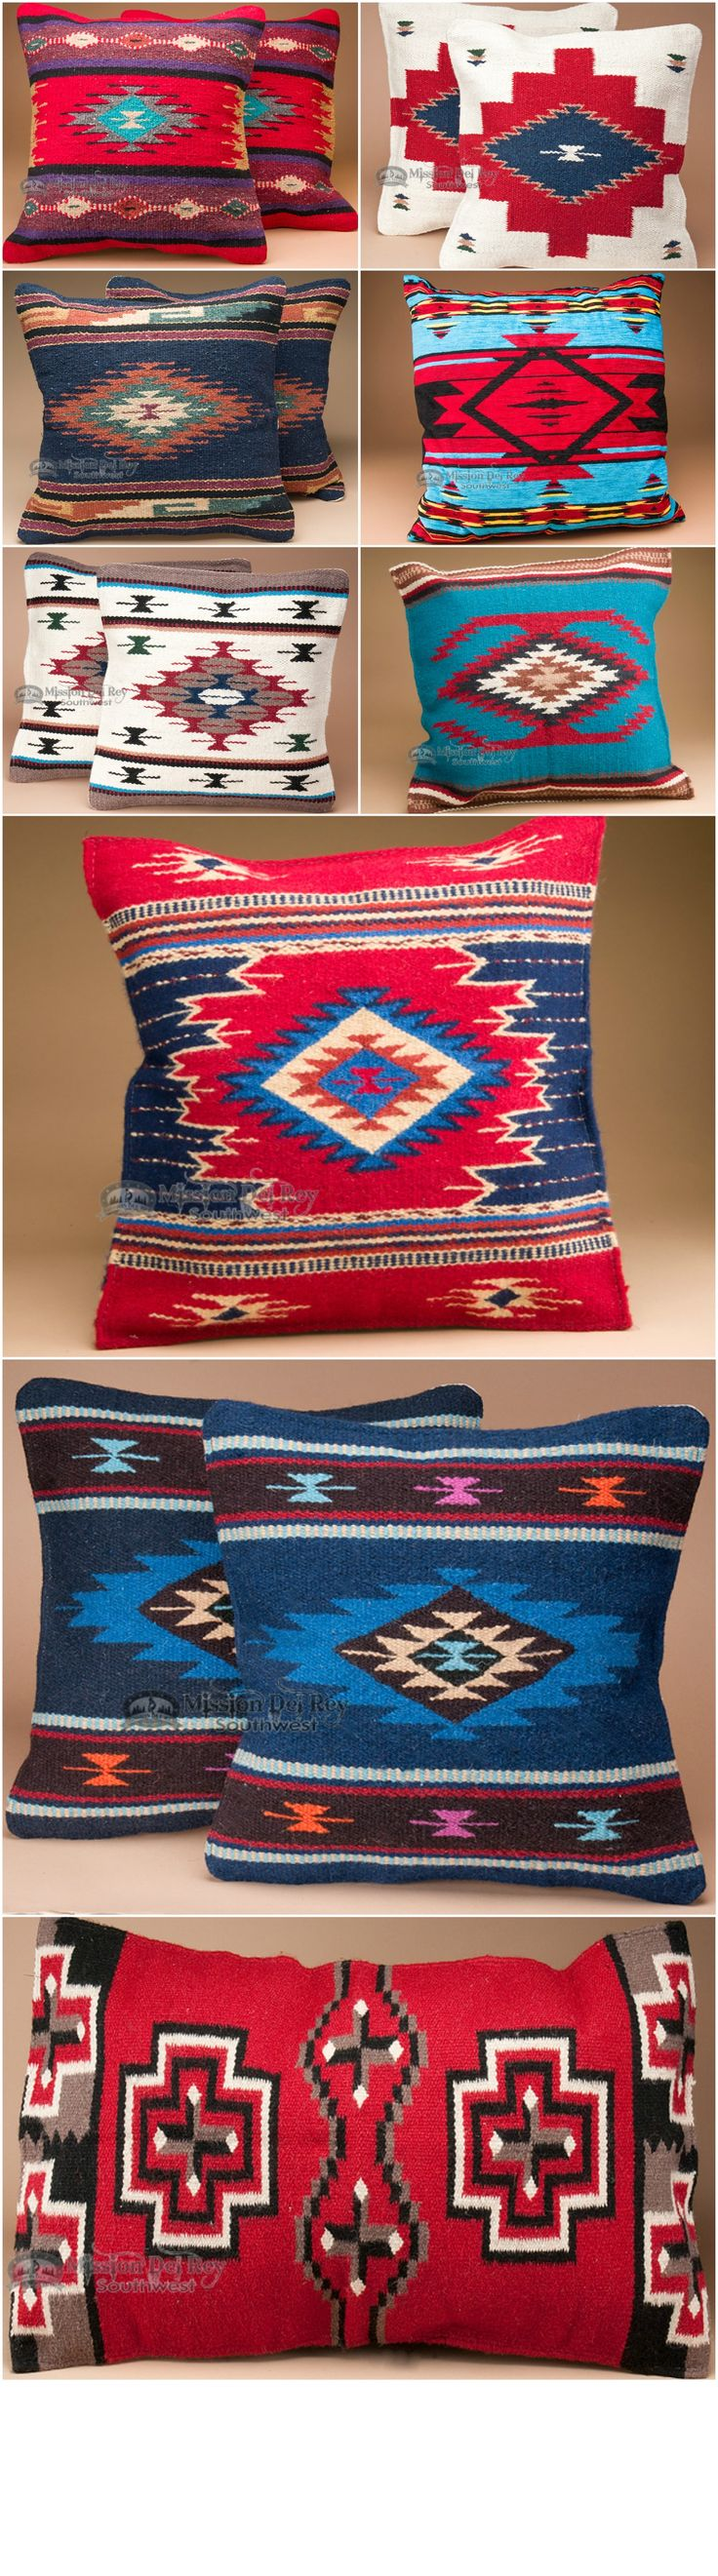 Using southwestern pillows in your home decor is the perfect way to accent  a rustic living room  bedroom  or any area you want to add bright color and. Best 25  Southwest bedroom ideas on Pinterest   Southwest decor